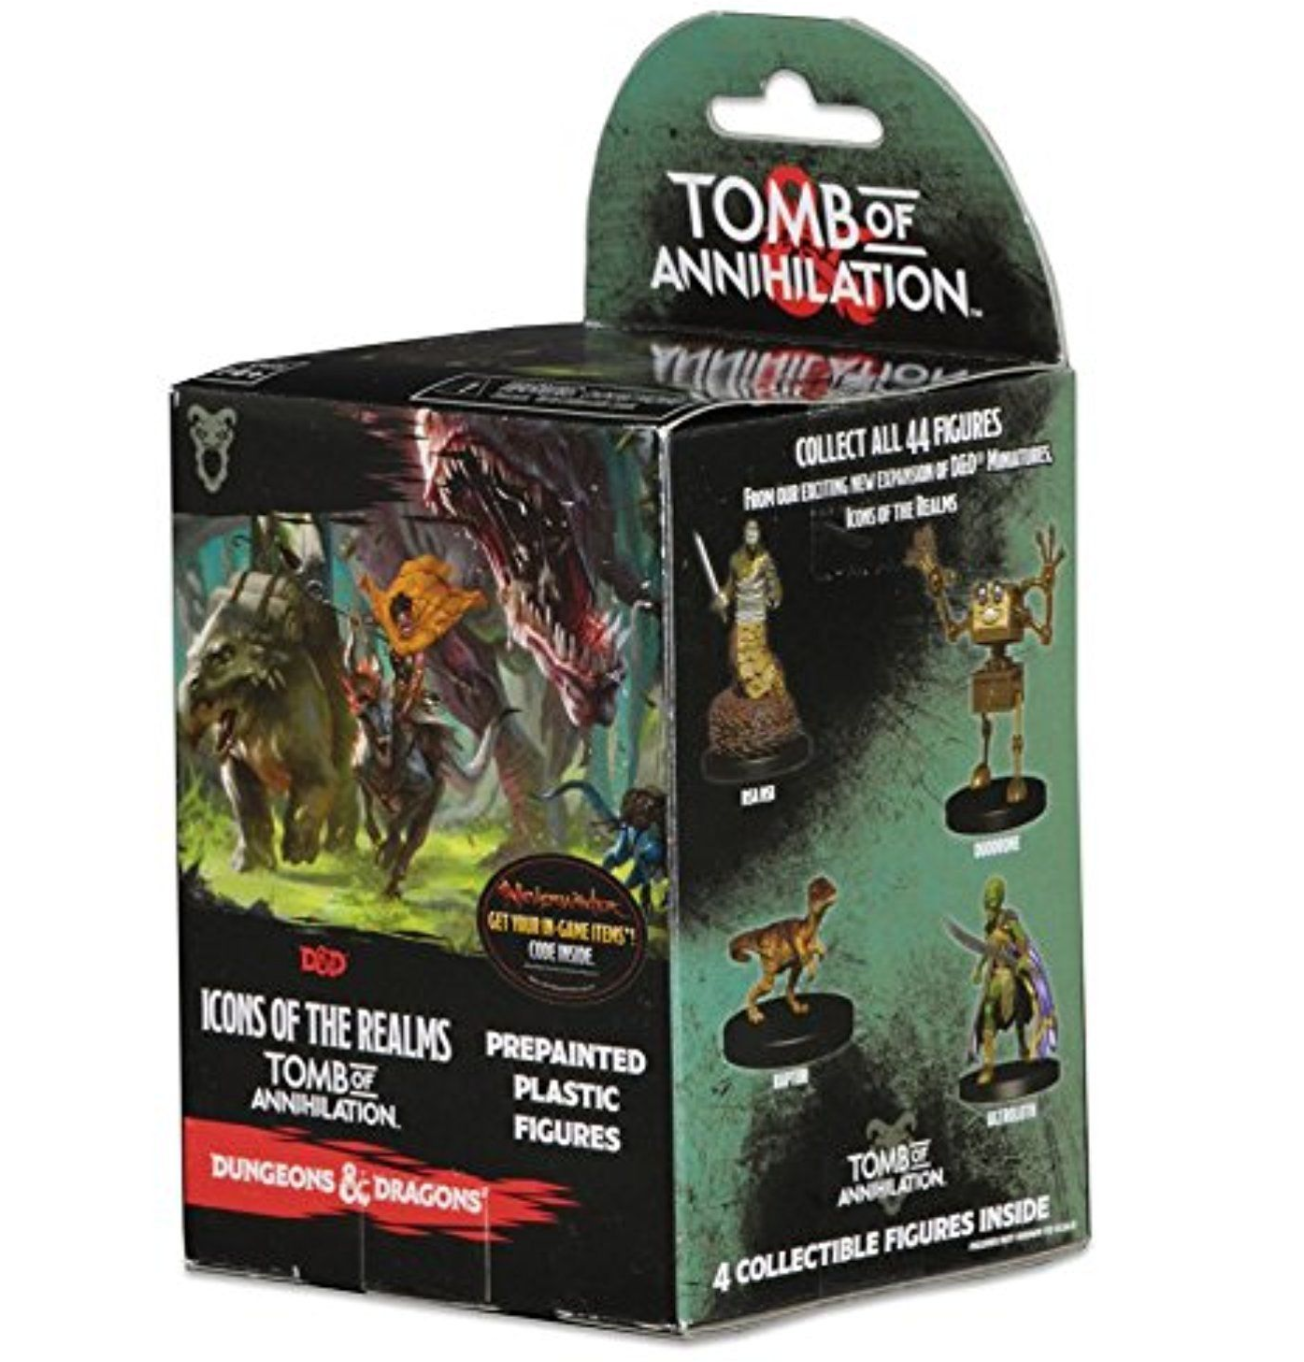 D&D Icons of the Realms - Tomb of Annihilation - Booster